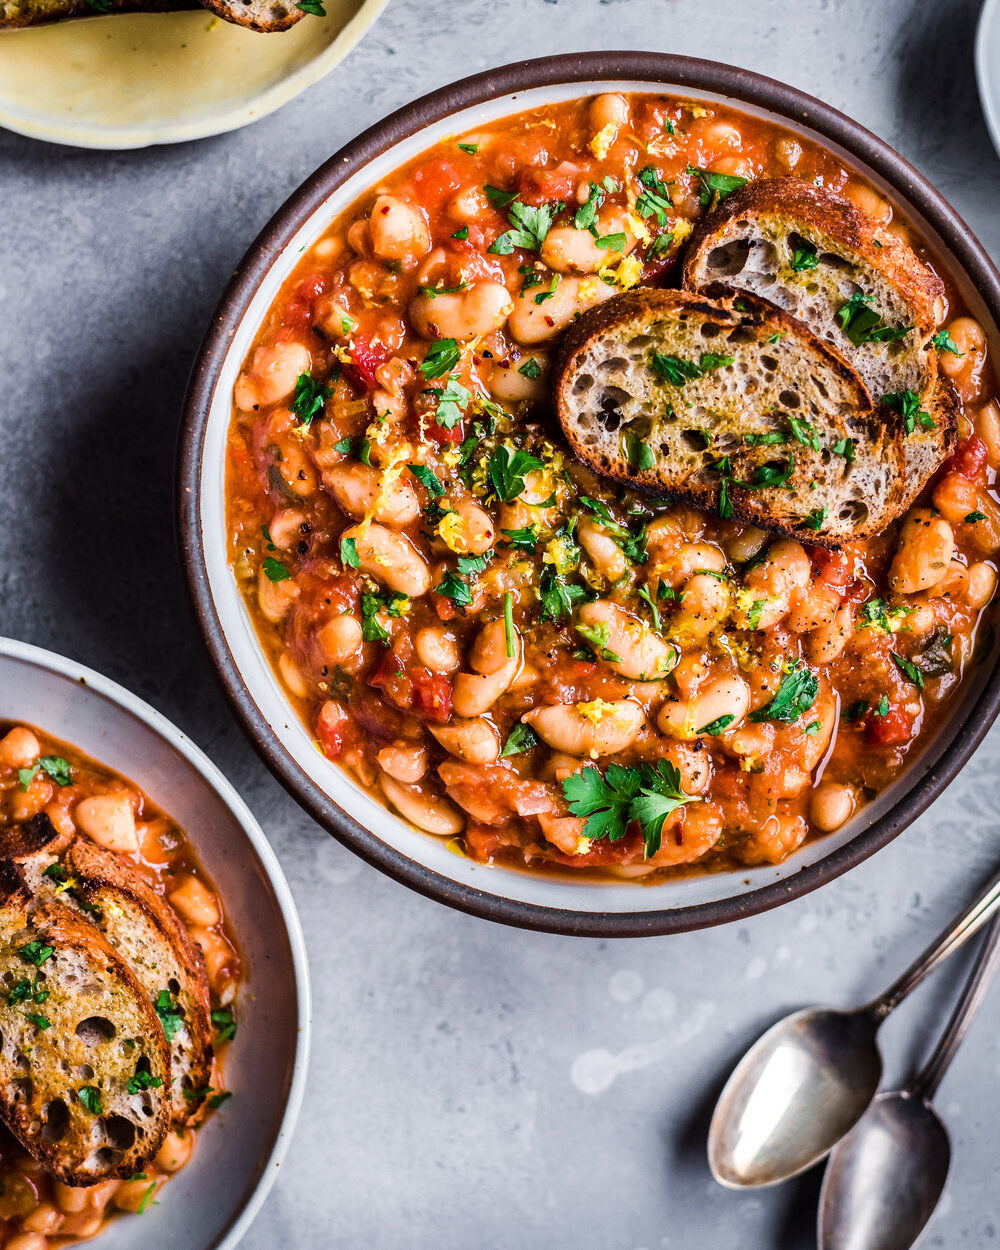 Two bowls of white beans in a tomato-based sauce topped with fresh herbs and sliced bread.